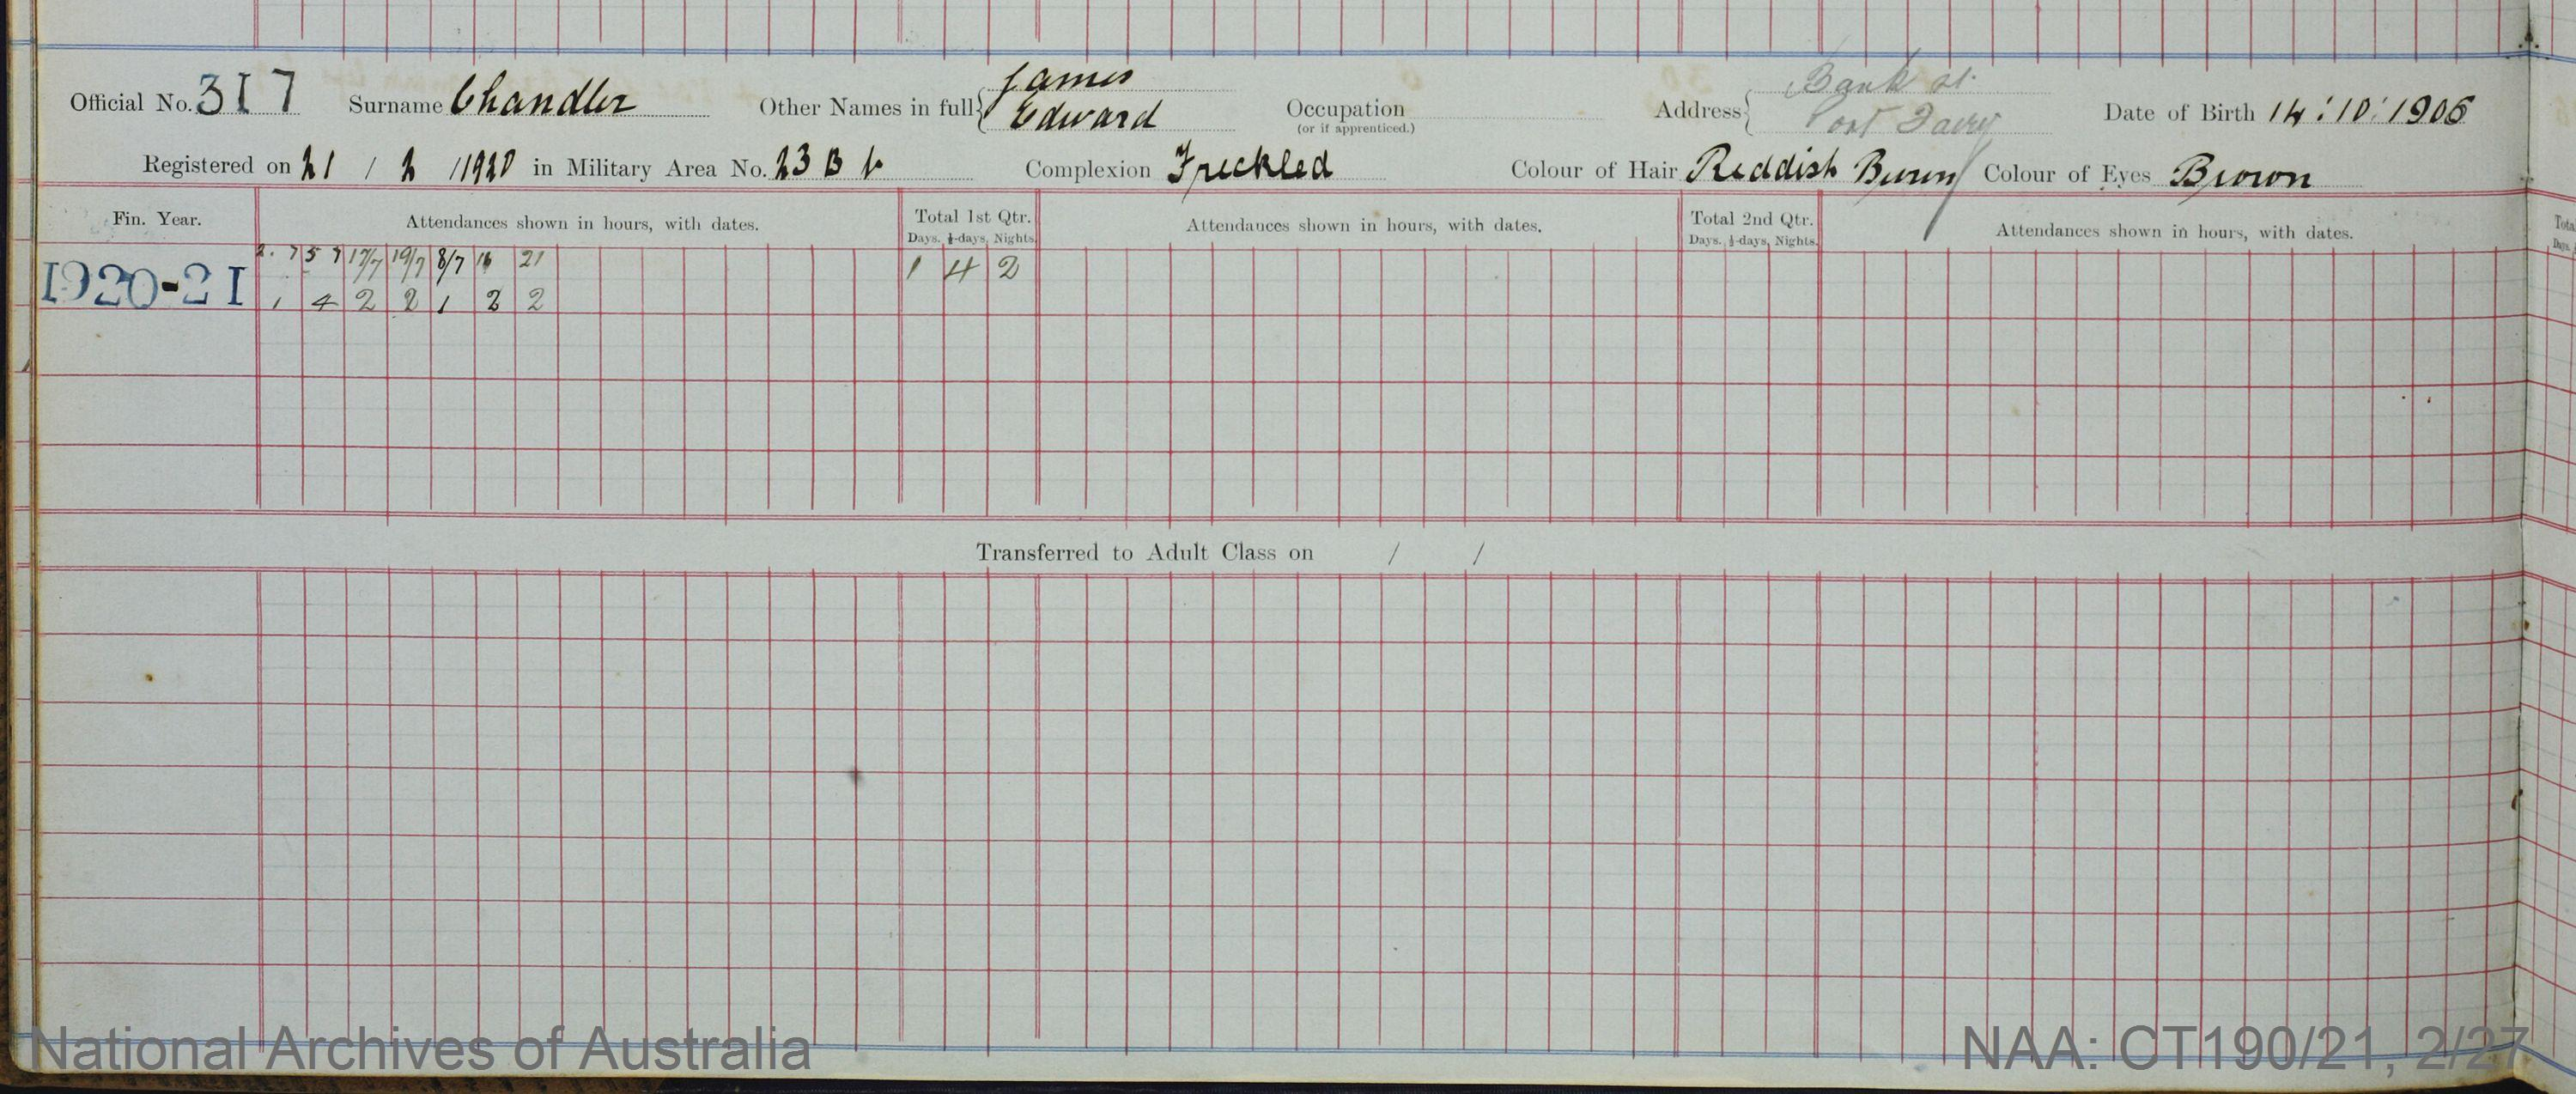 SURNAME - CHANDLER;  GIVEN NAME(S) - James Edward;  OFFICIAL NUMBER - 317;  DATE OF BIRTH - 14 October 1906;  PLACE OF BIRTH - [Unknown];  NEXT OF KIN - [Unknown] ;  SERVICE/STATION - Port Fairy;  REGISTRATION DATE - 21 February 1920